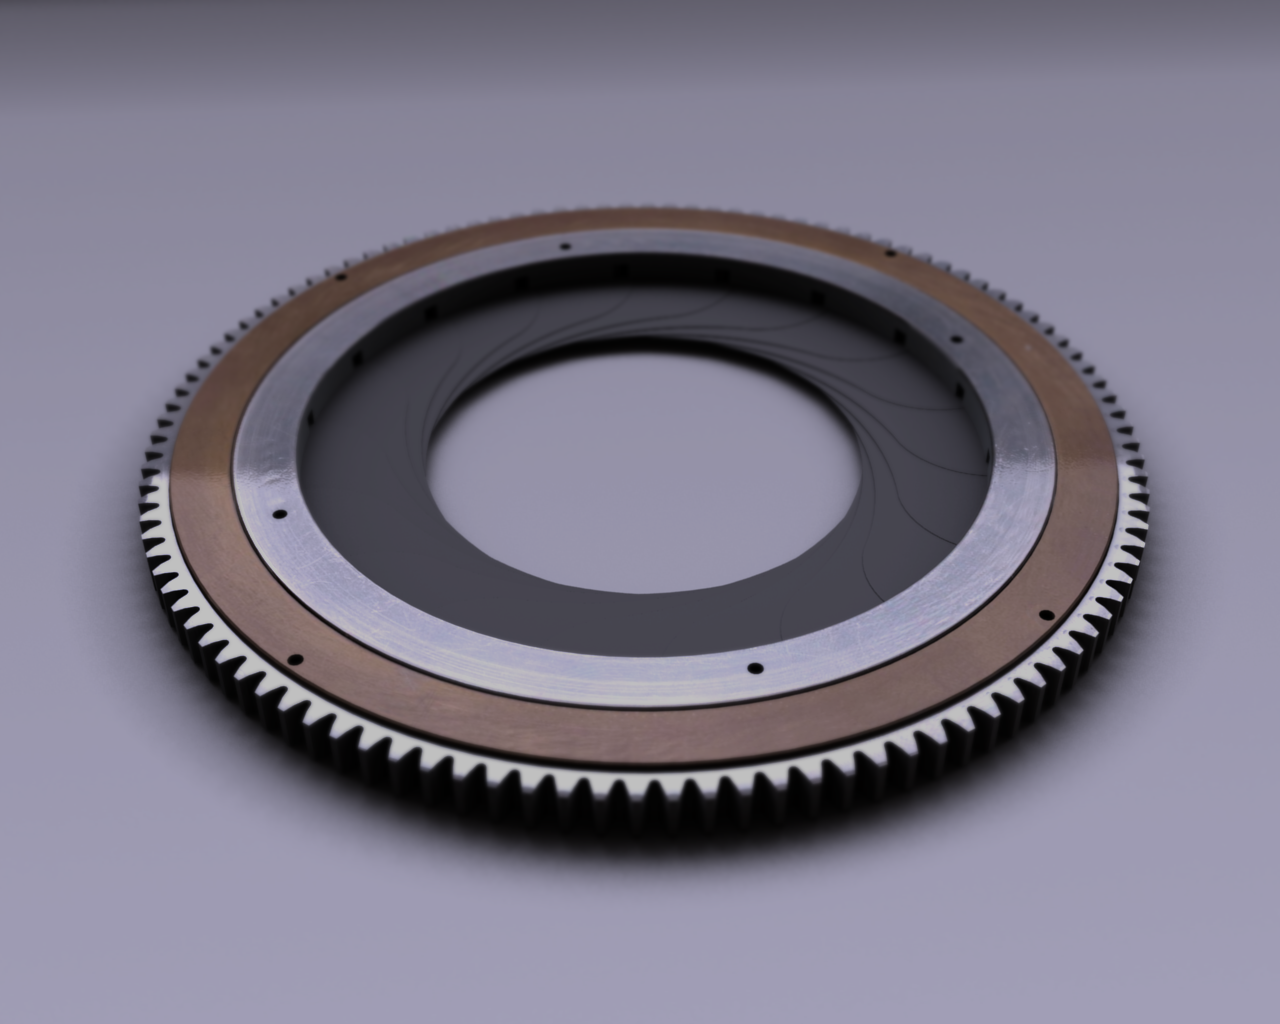 Mechanical iris diaphragm design main image